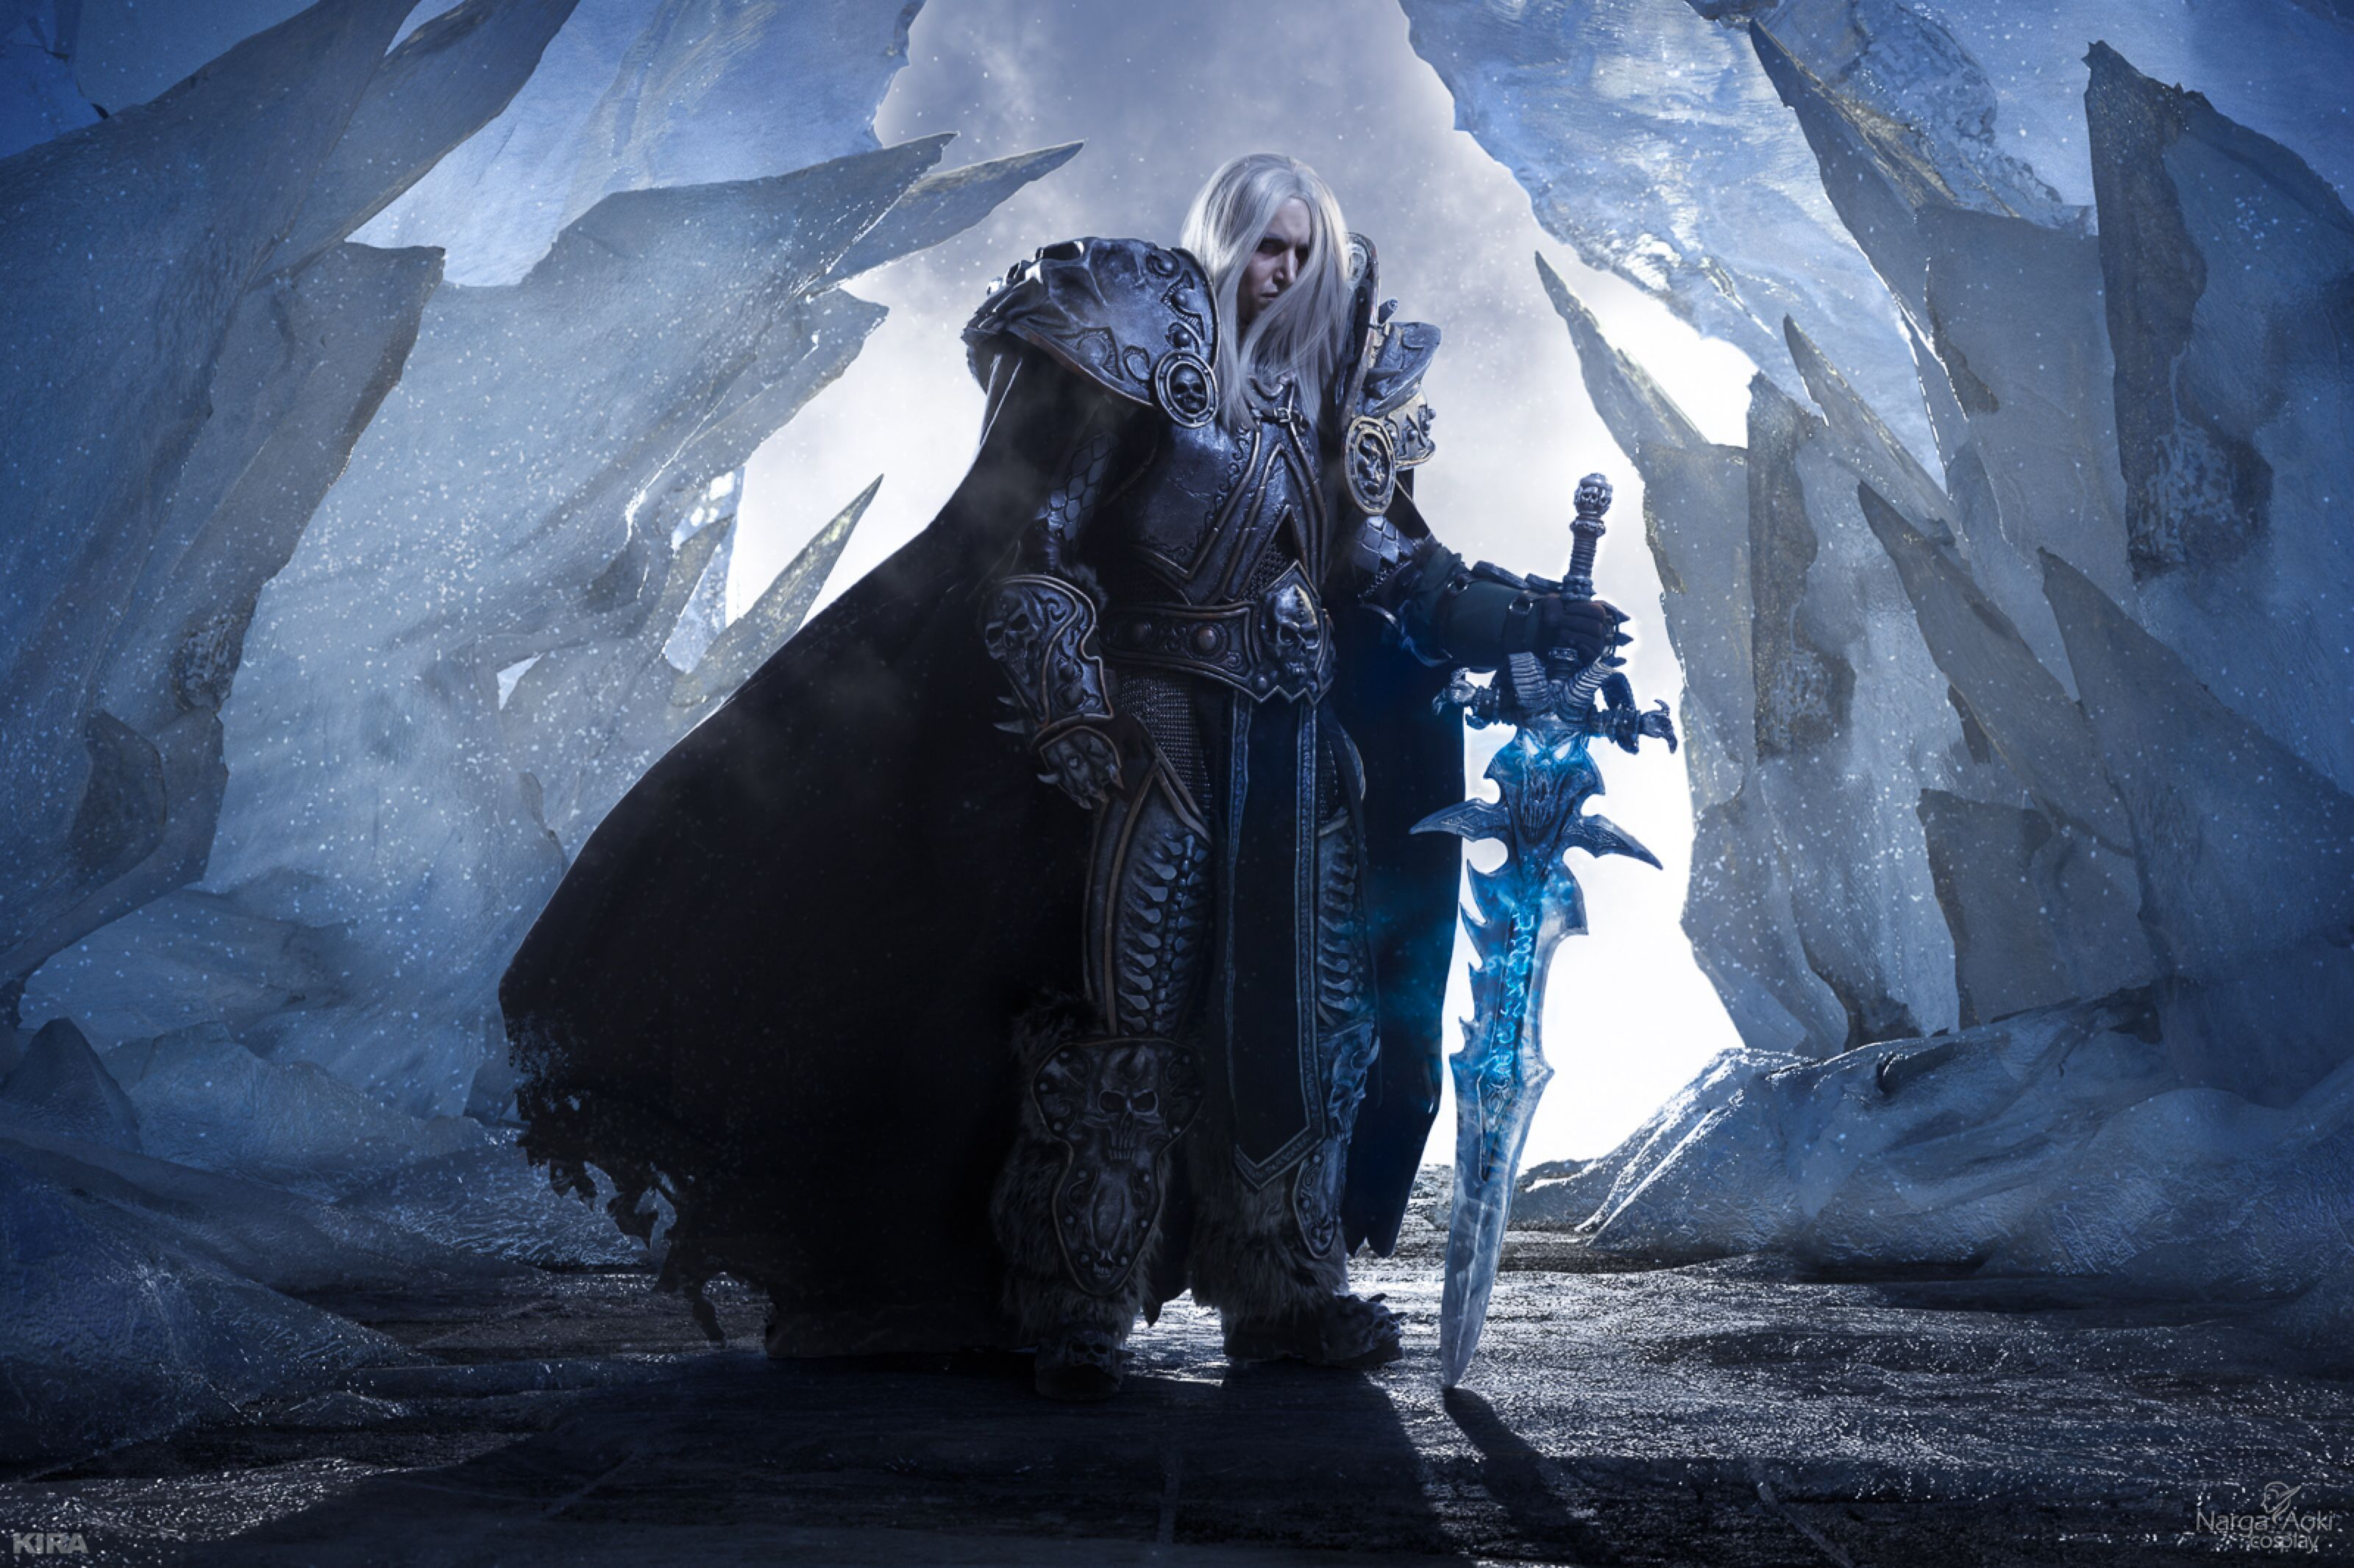 Arthas Menethil Frozen Throne By Narga Lifestream On Deviantart In 2020 Arthas Menethil Warcraft Art World Of Warcraft The best site dedicated to analyzing heroes of the storm replay files. pinterest